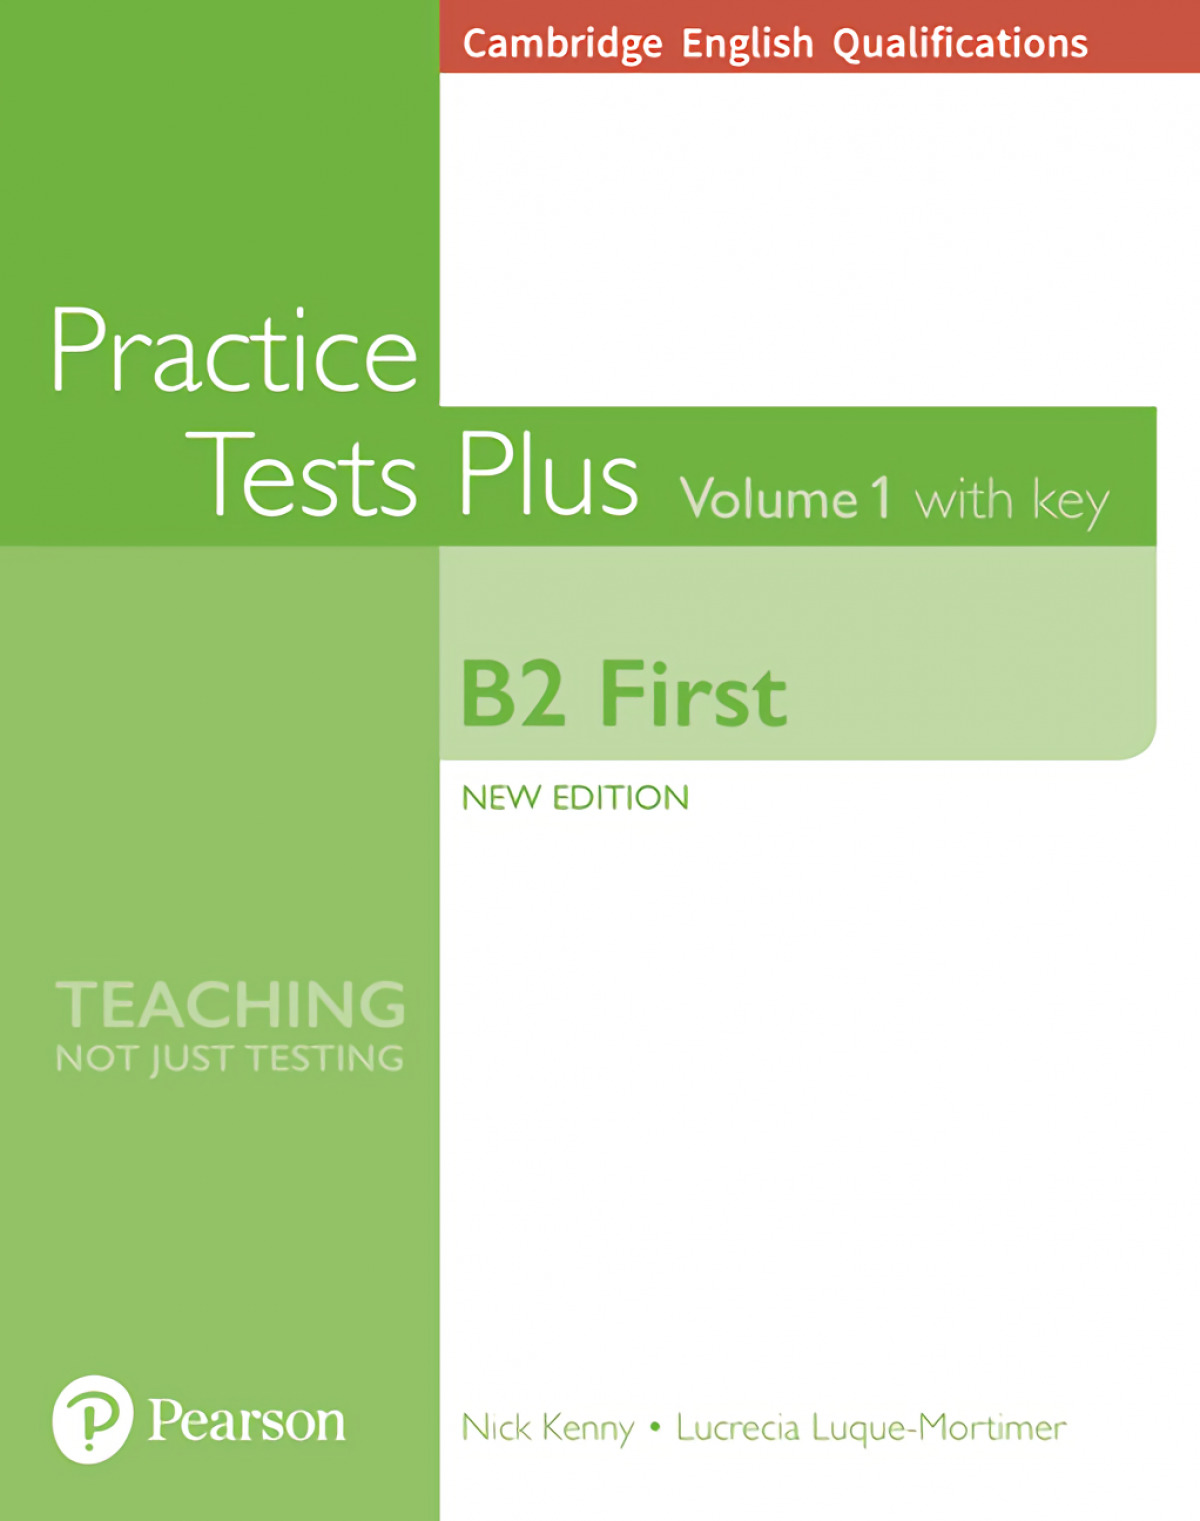 Cambridge English Qualifications: B2 First Volume 1 Practice Tests Pluswith key